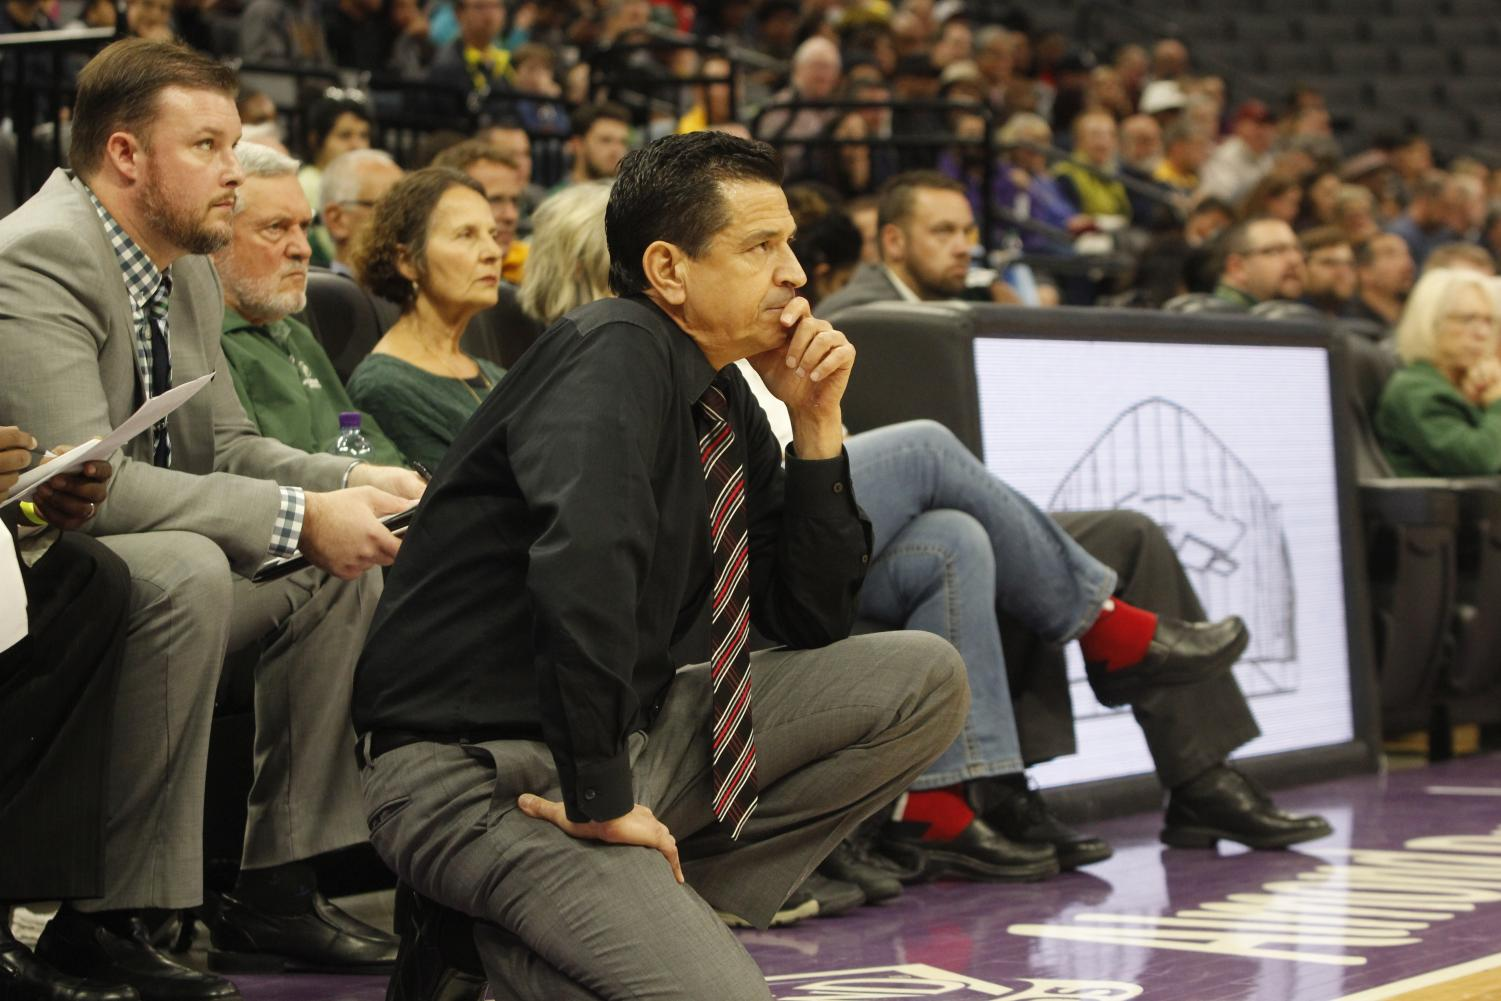 Sac State head coach Brian Katz is entering his 11th season as the head coach of the Hornets. The team returns 10 players and opens the season at home tonight against Simpson University.